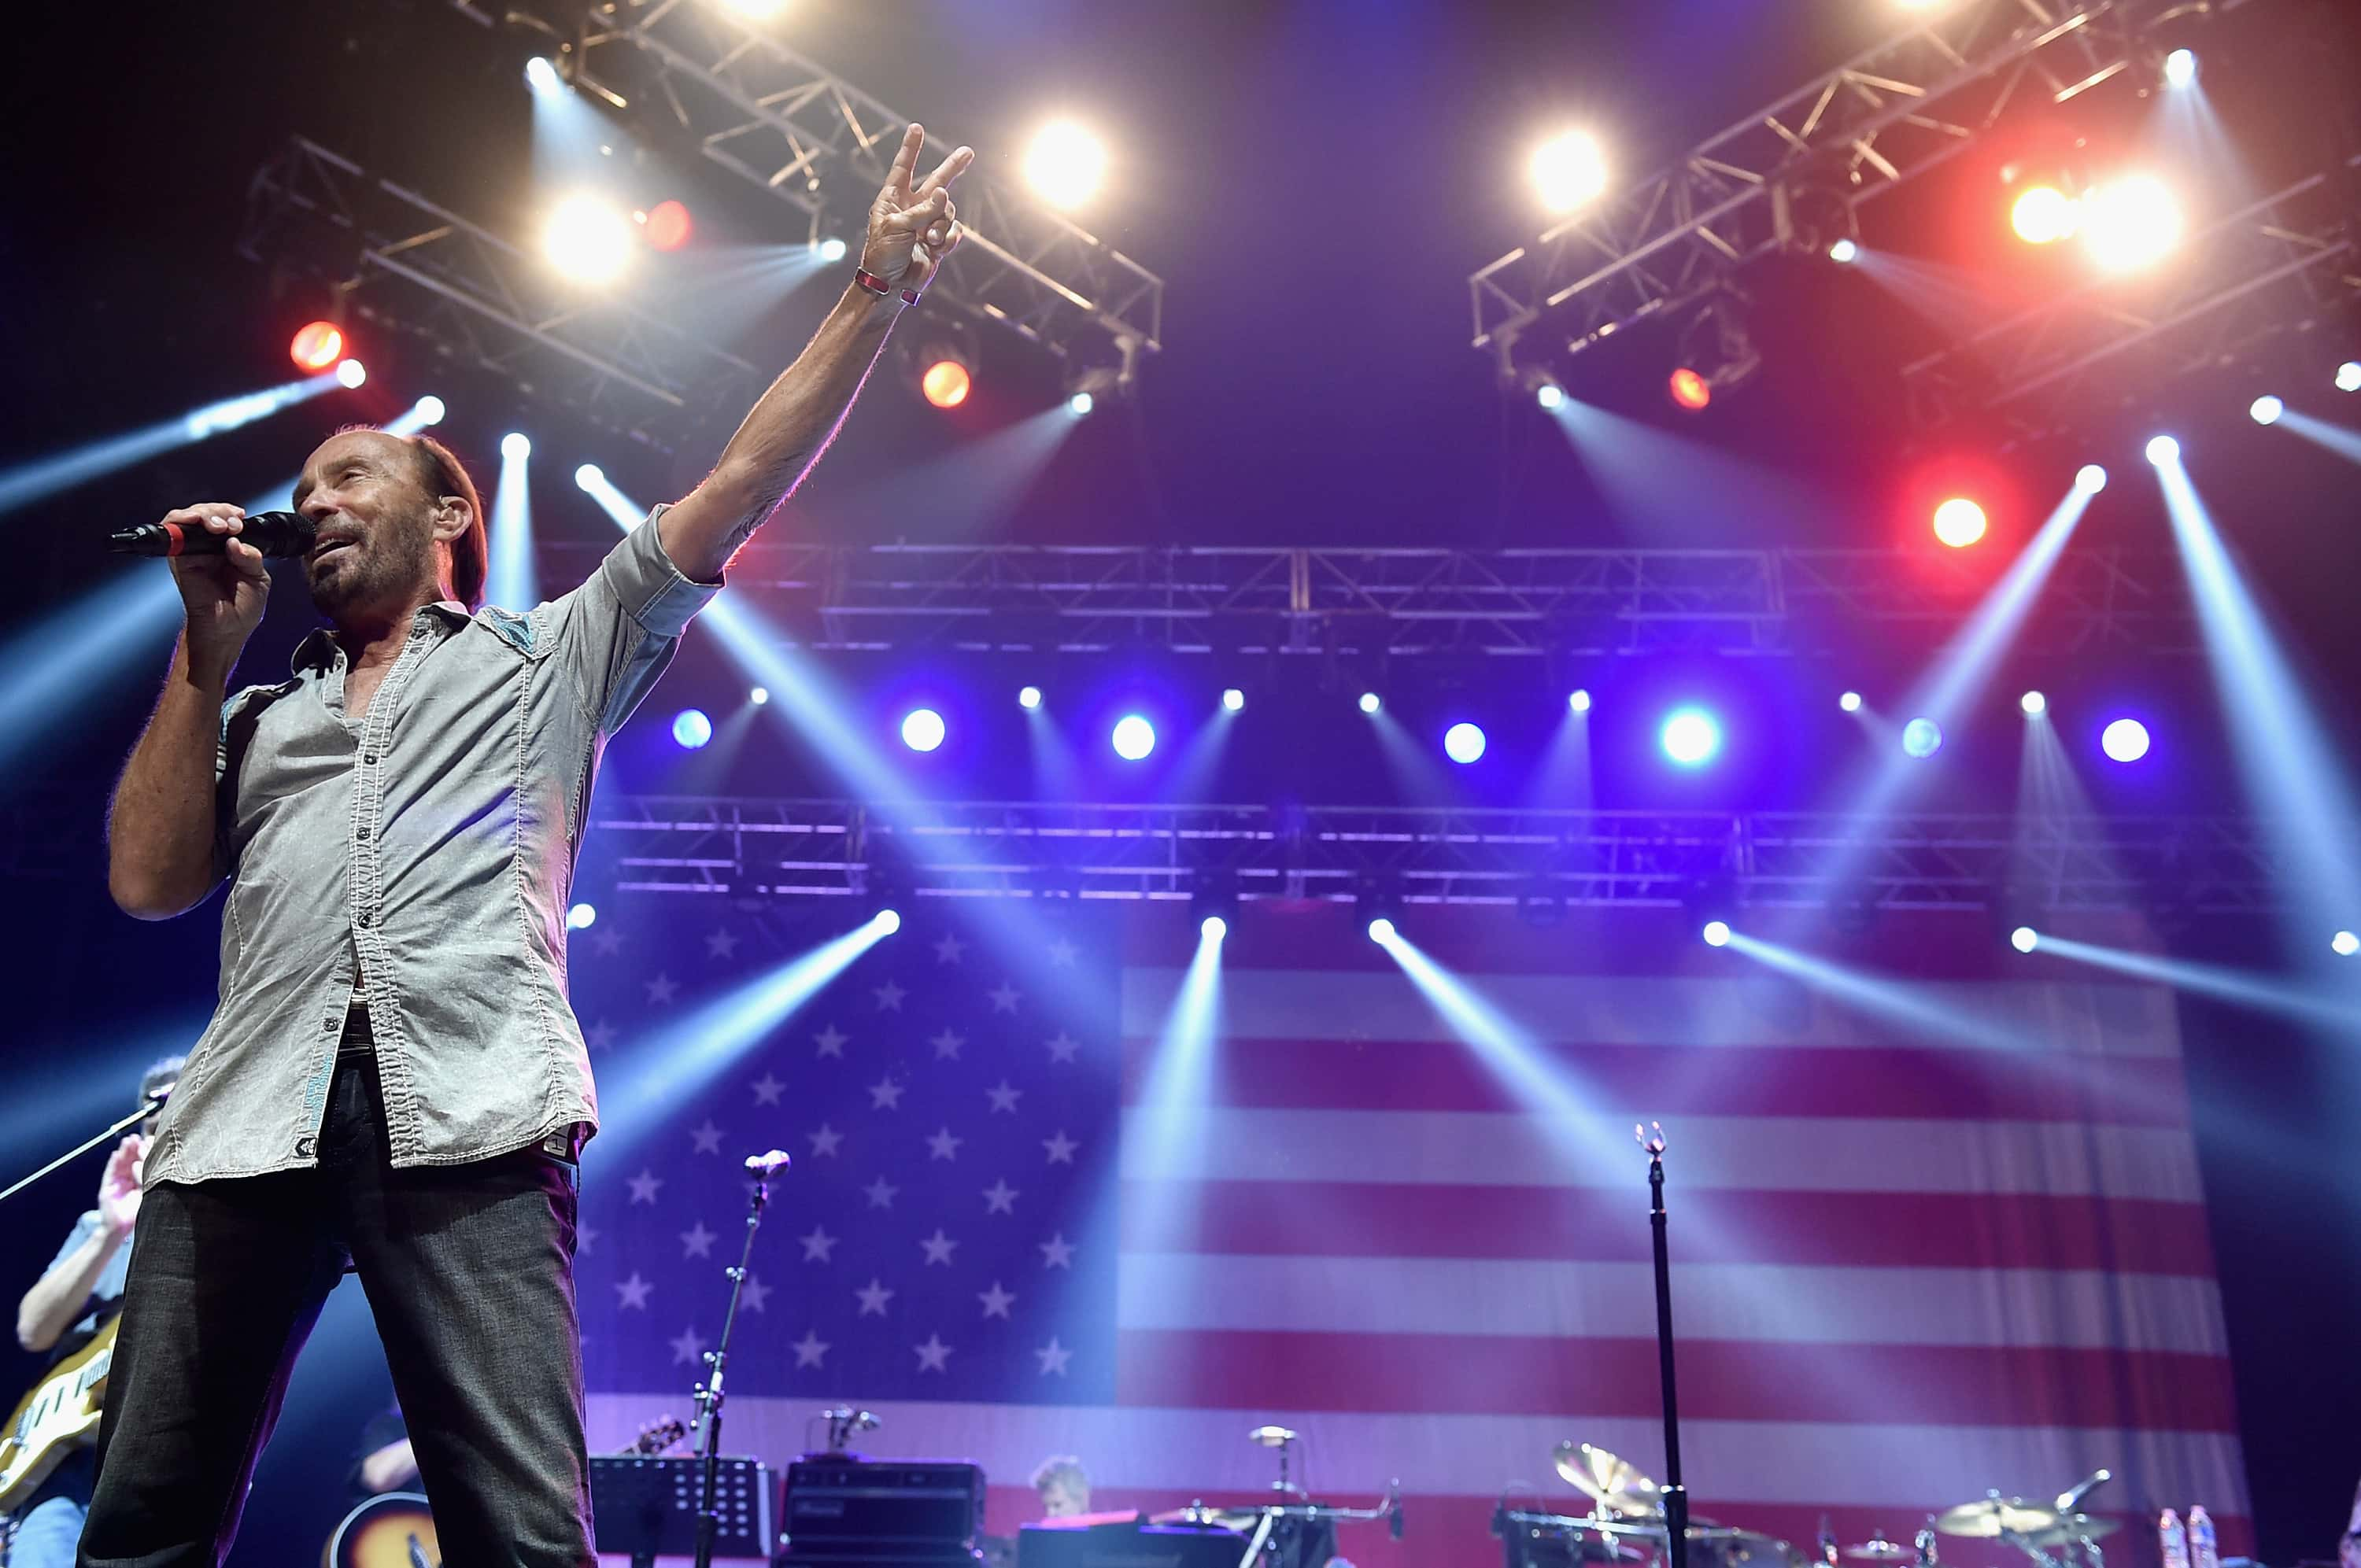 NASHVILLE, TN - AUGUST 12:  Lee Greenwood performs at the Charlie Daniels 2015 Volunteer Jam at Bridgestone Arena on August 12, 2015 in Nashville, Tennessee.  (Photo by John Shearer/Getty Images for Webster Public Relations)